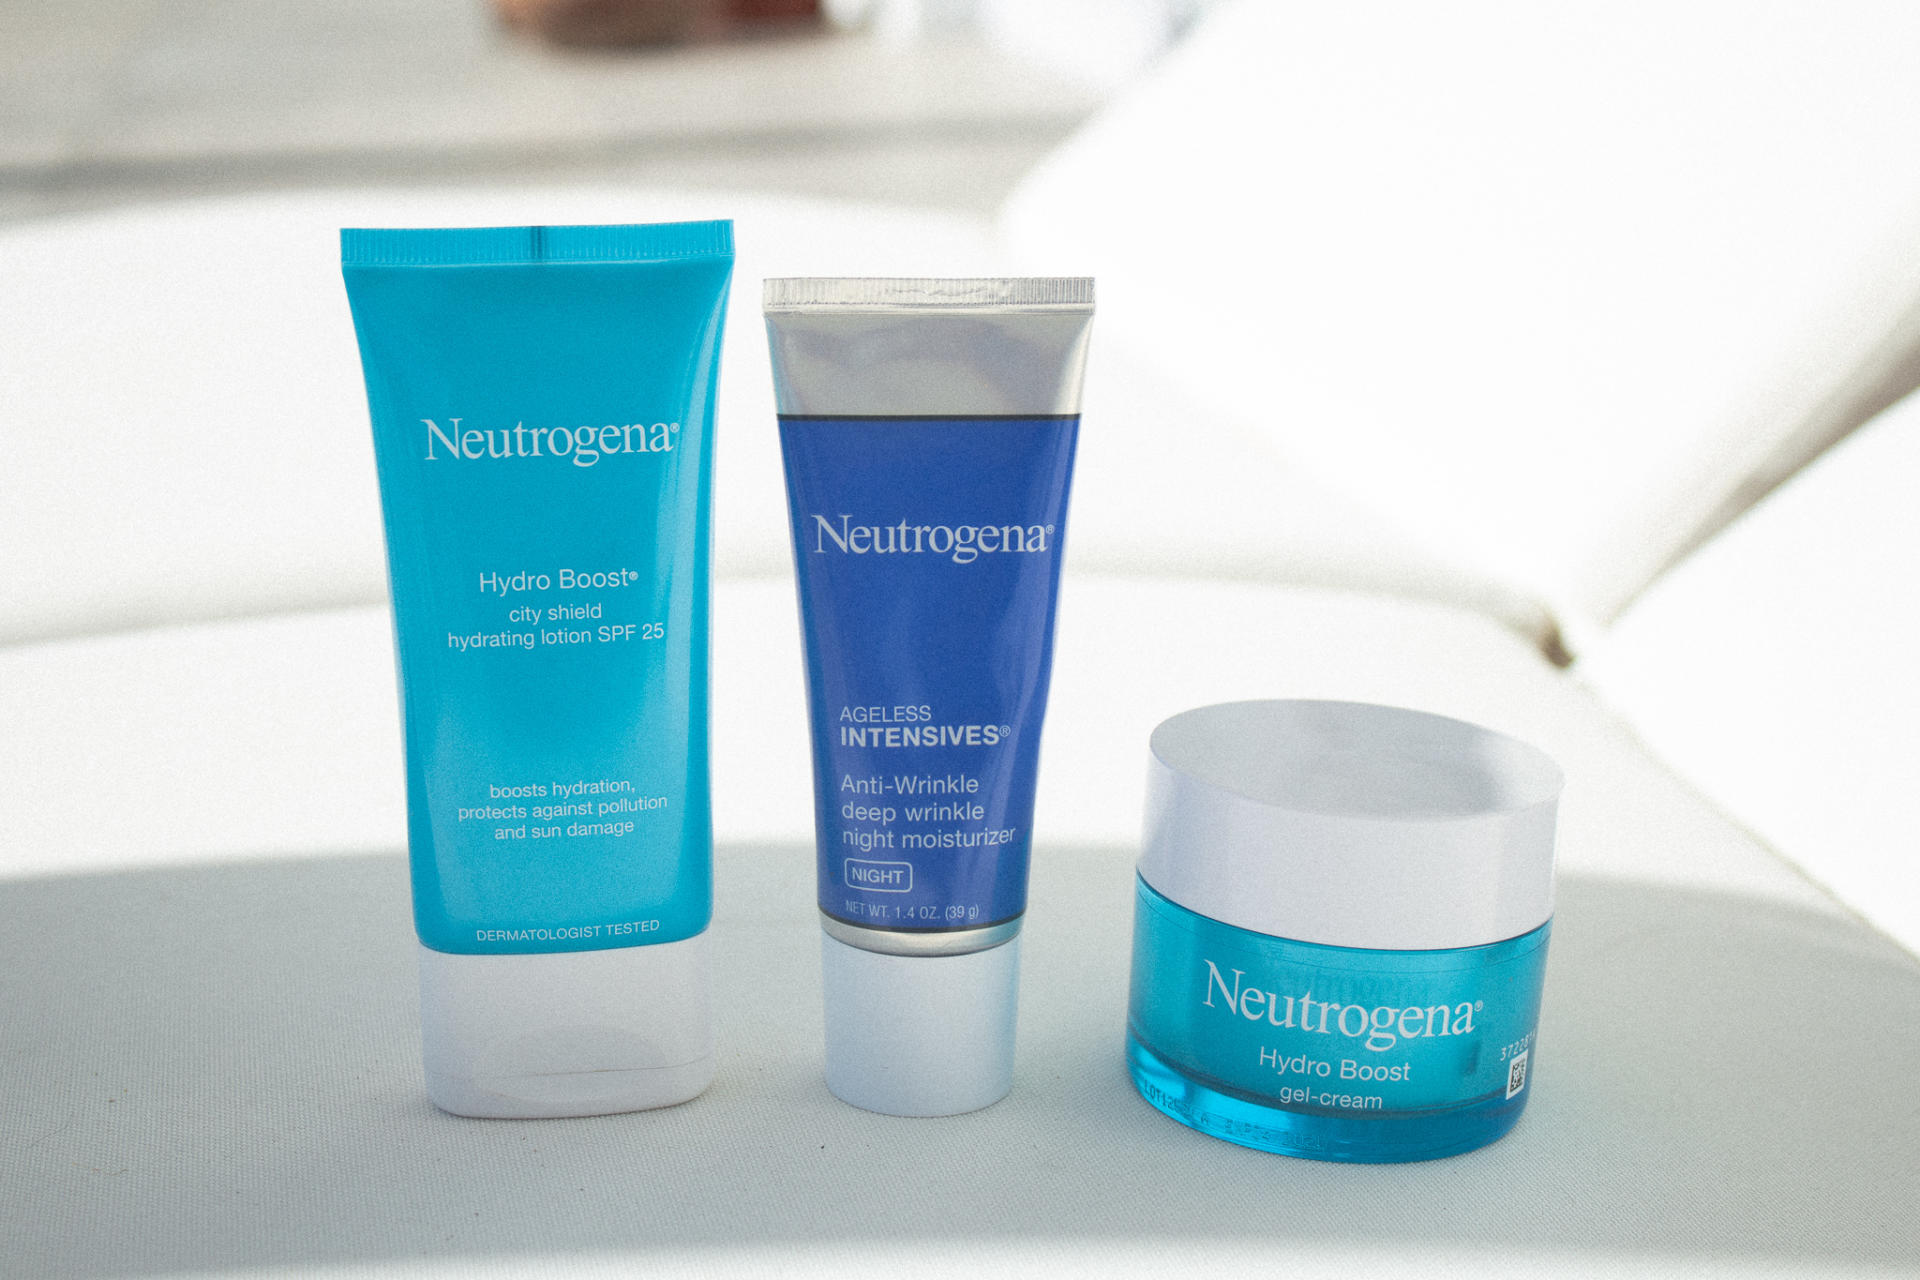 Hydrated skin products